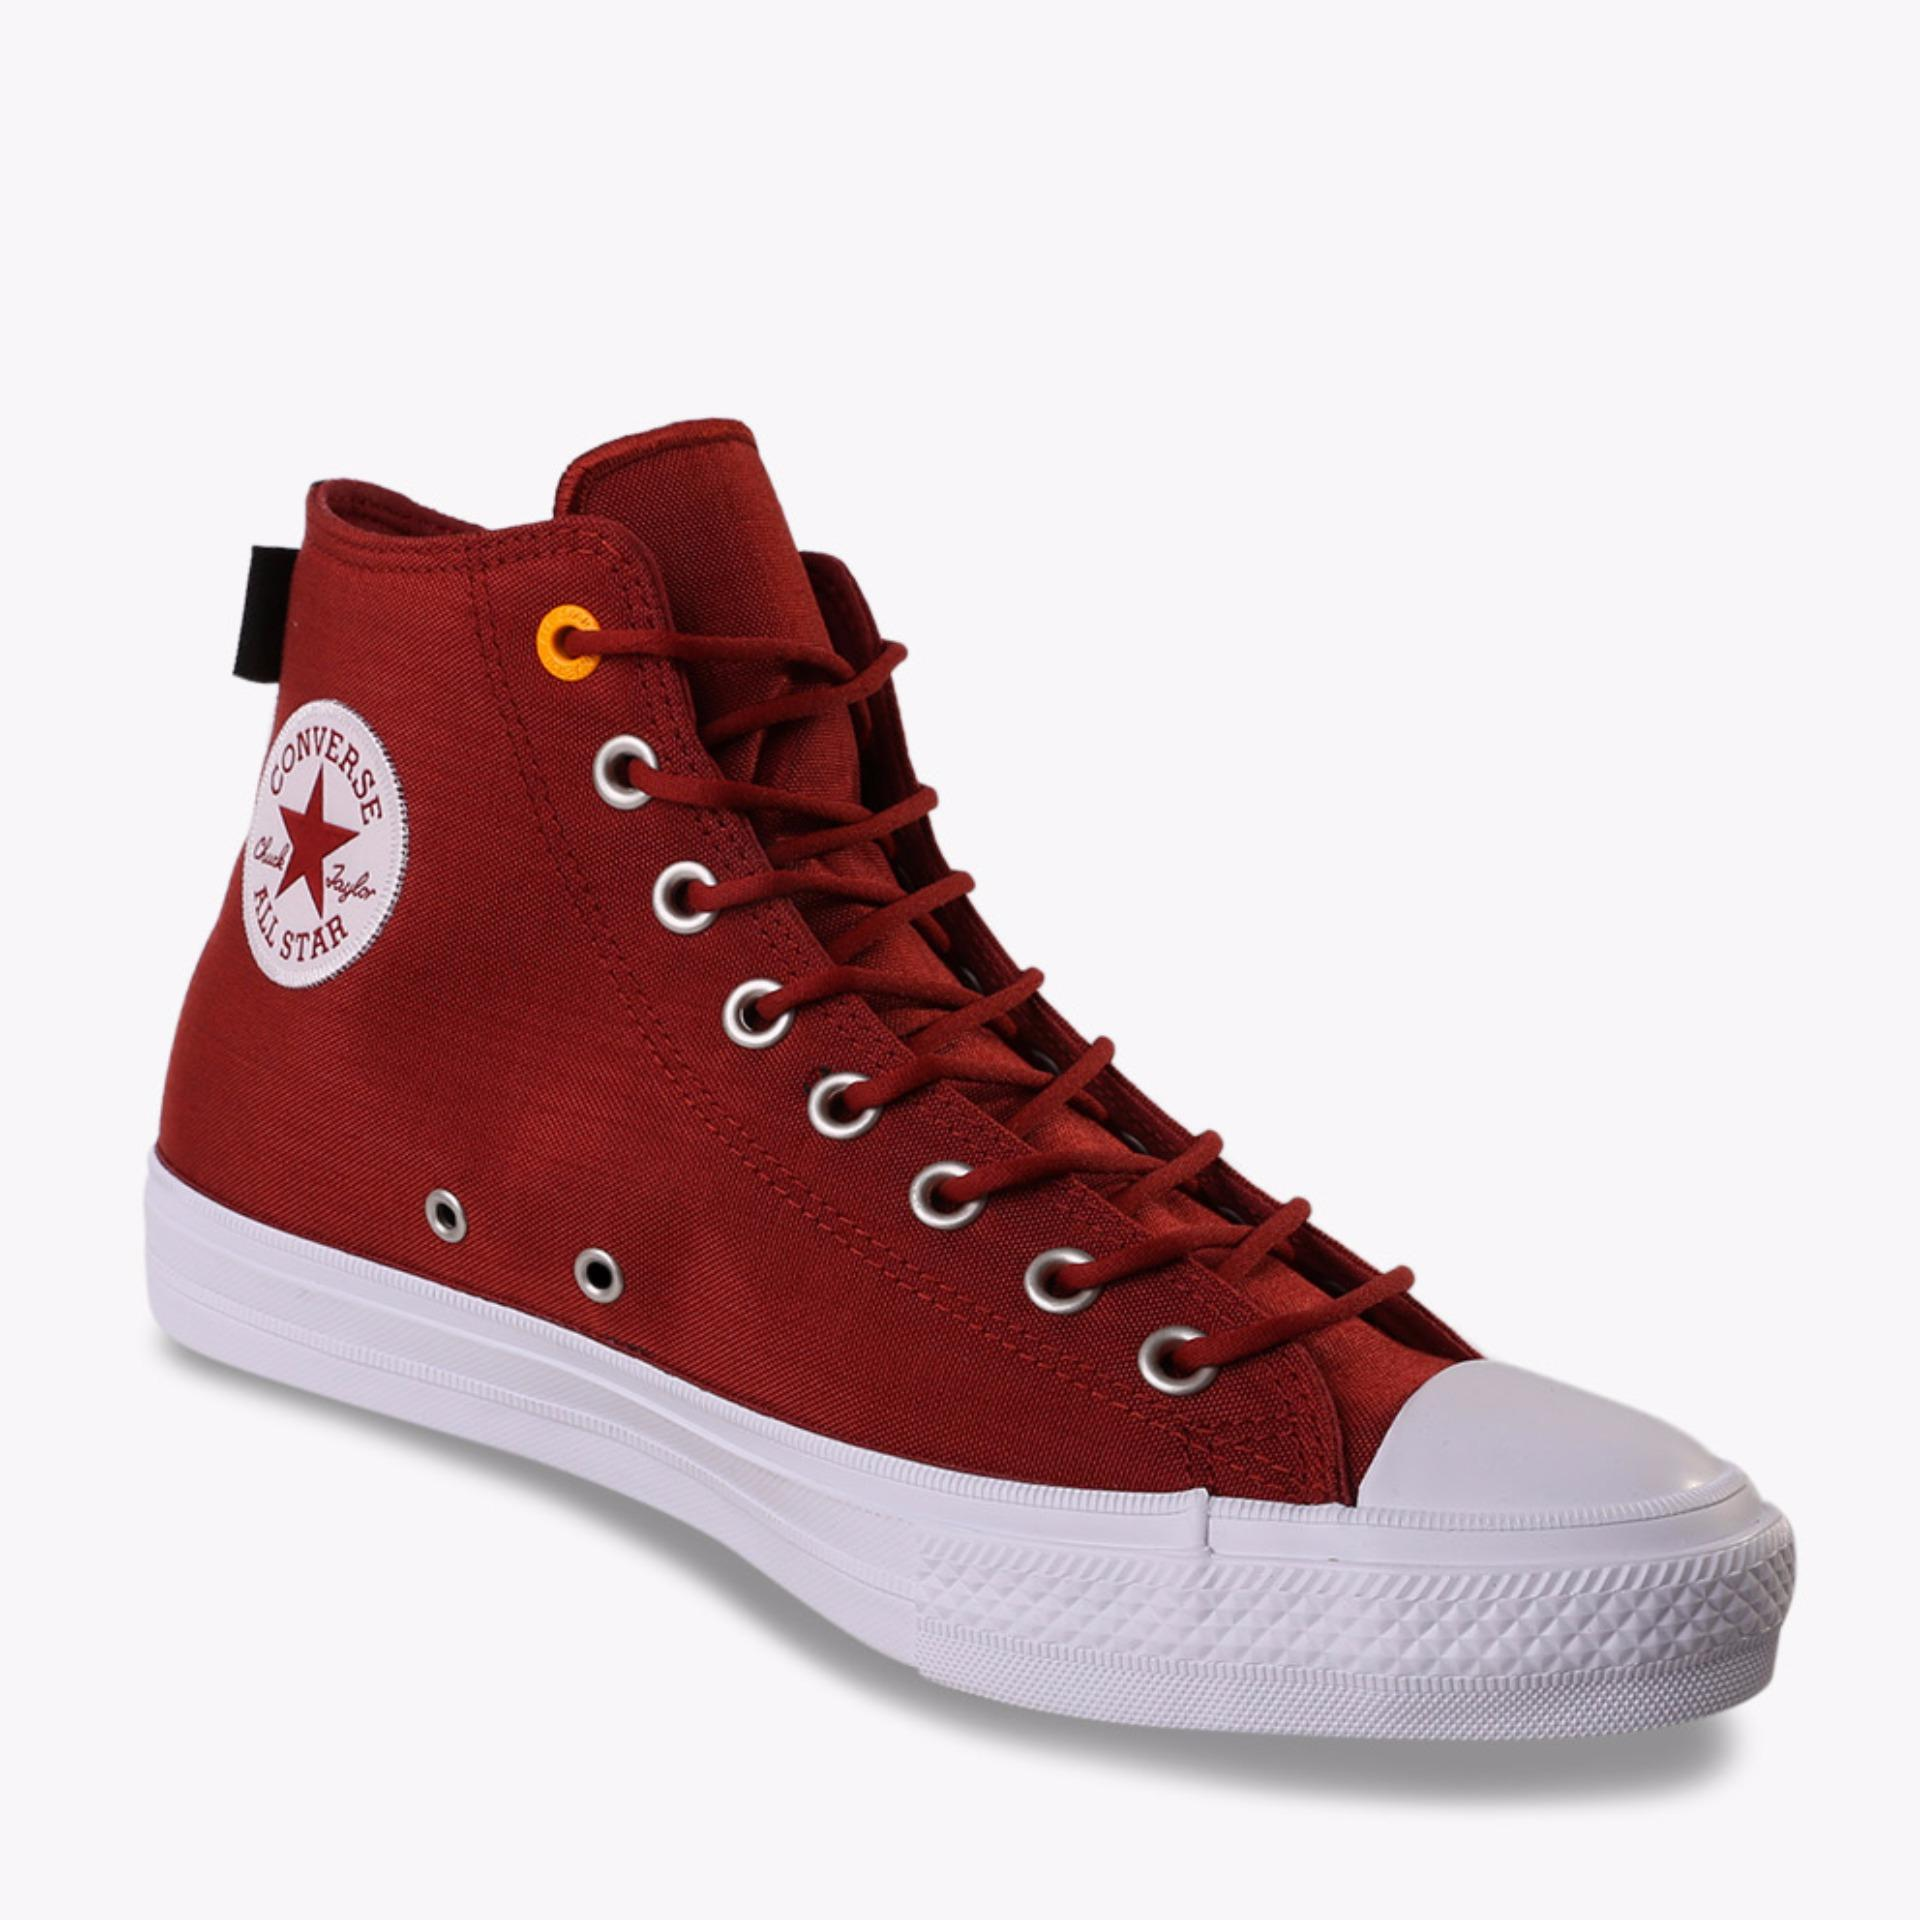 Harga Converse All Star Chuck Taylor Ii Cordura High Men S Sneakers Shoes Merah Online Indonesia